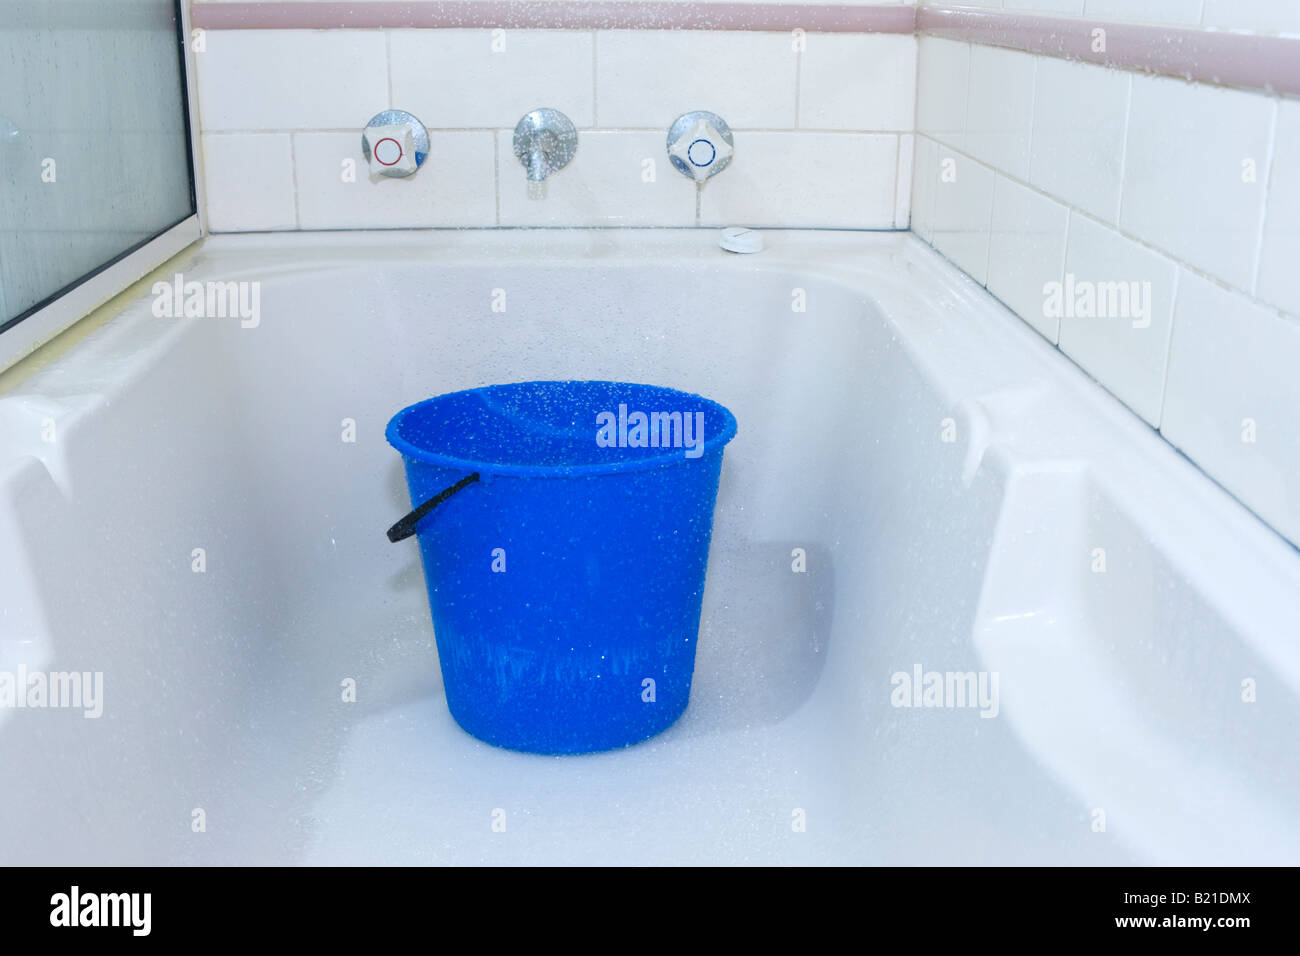 A Bucket Placed In A Bath Under The Shower To Conserve Water So It Stock Photo Royalty Free